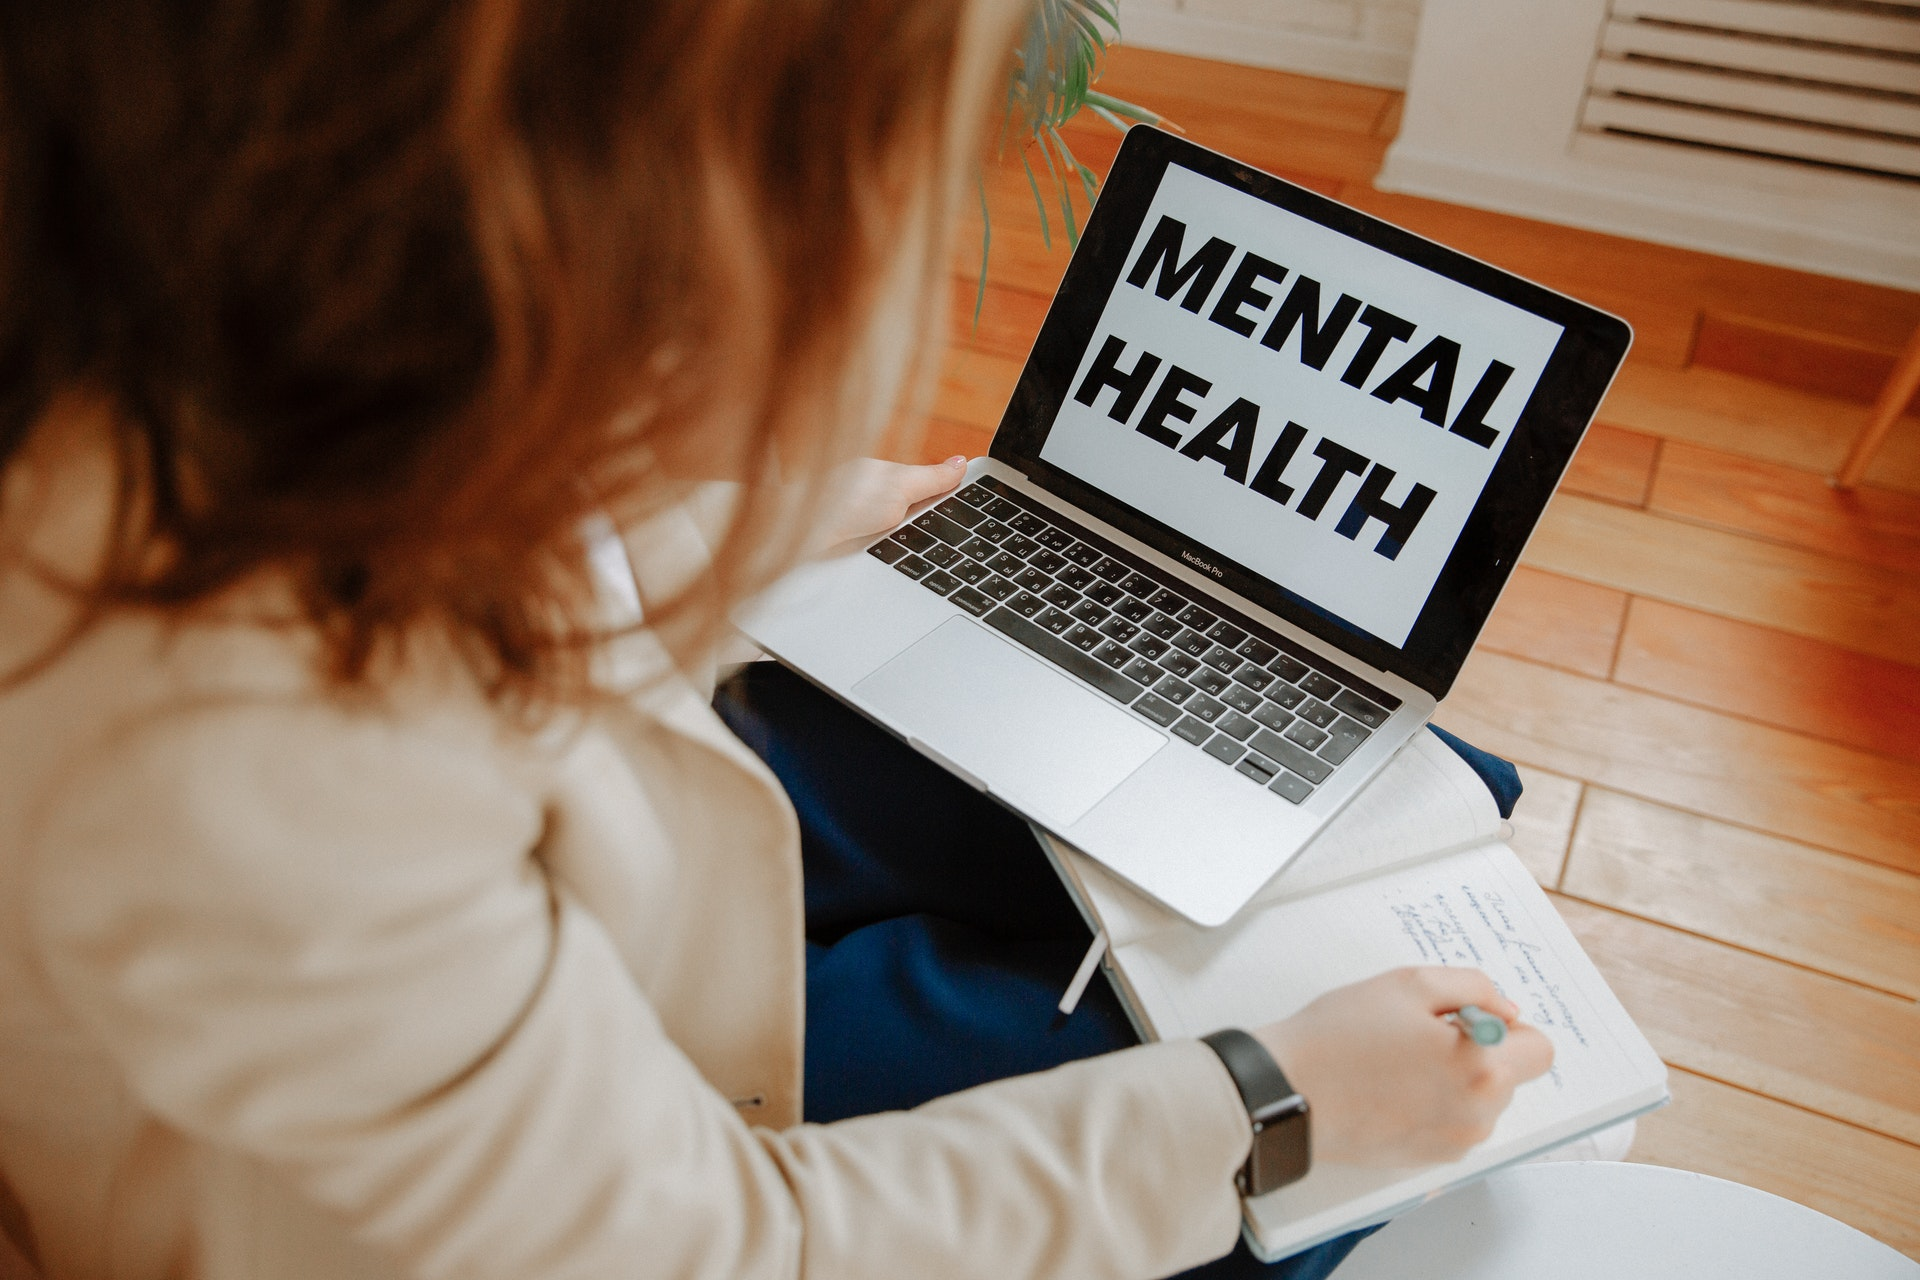 computer screen with mental health chatbot